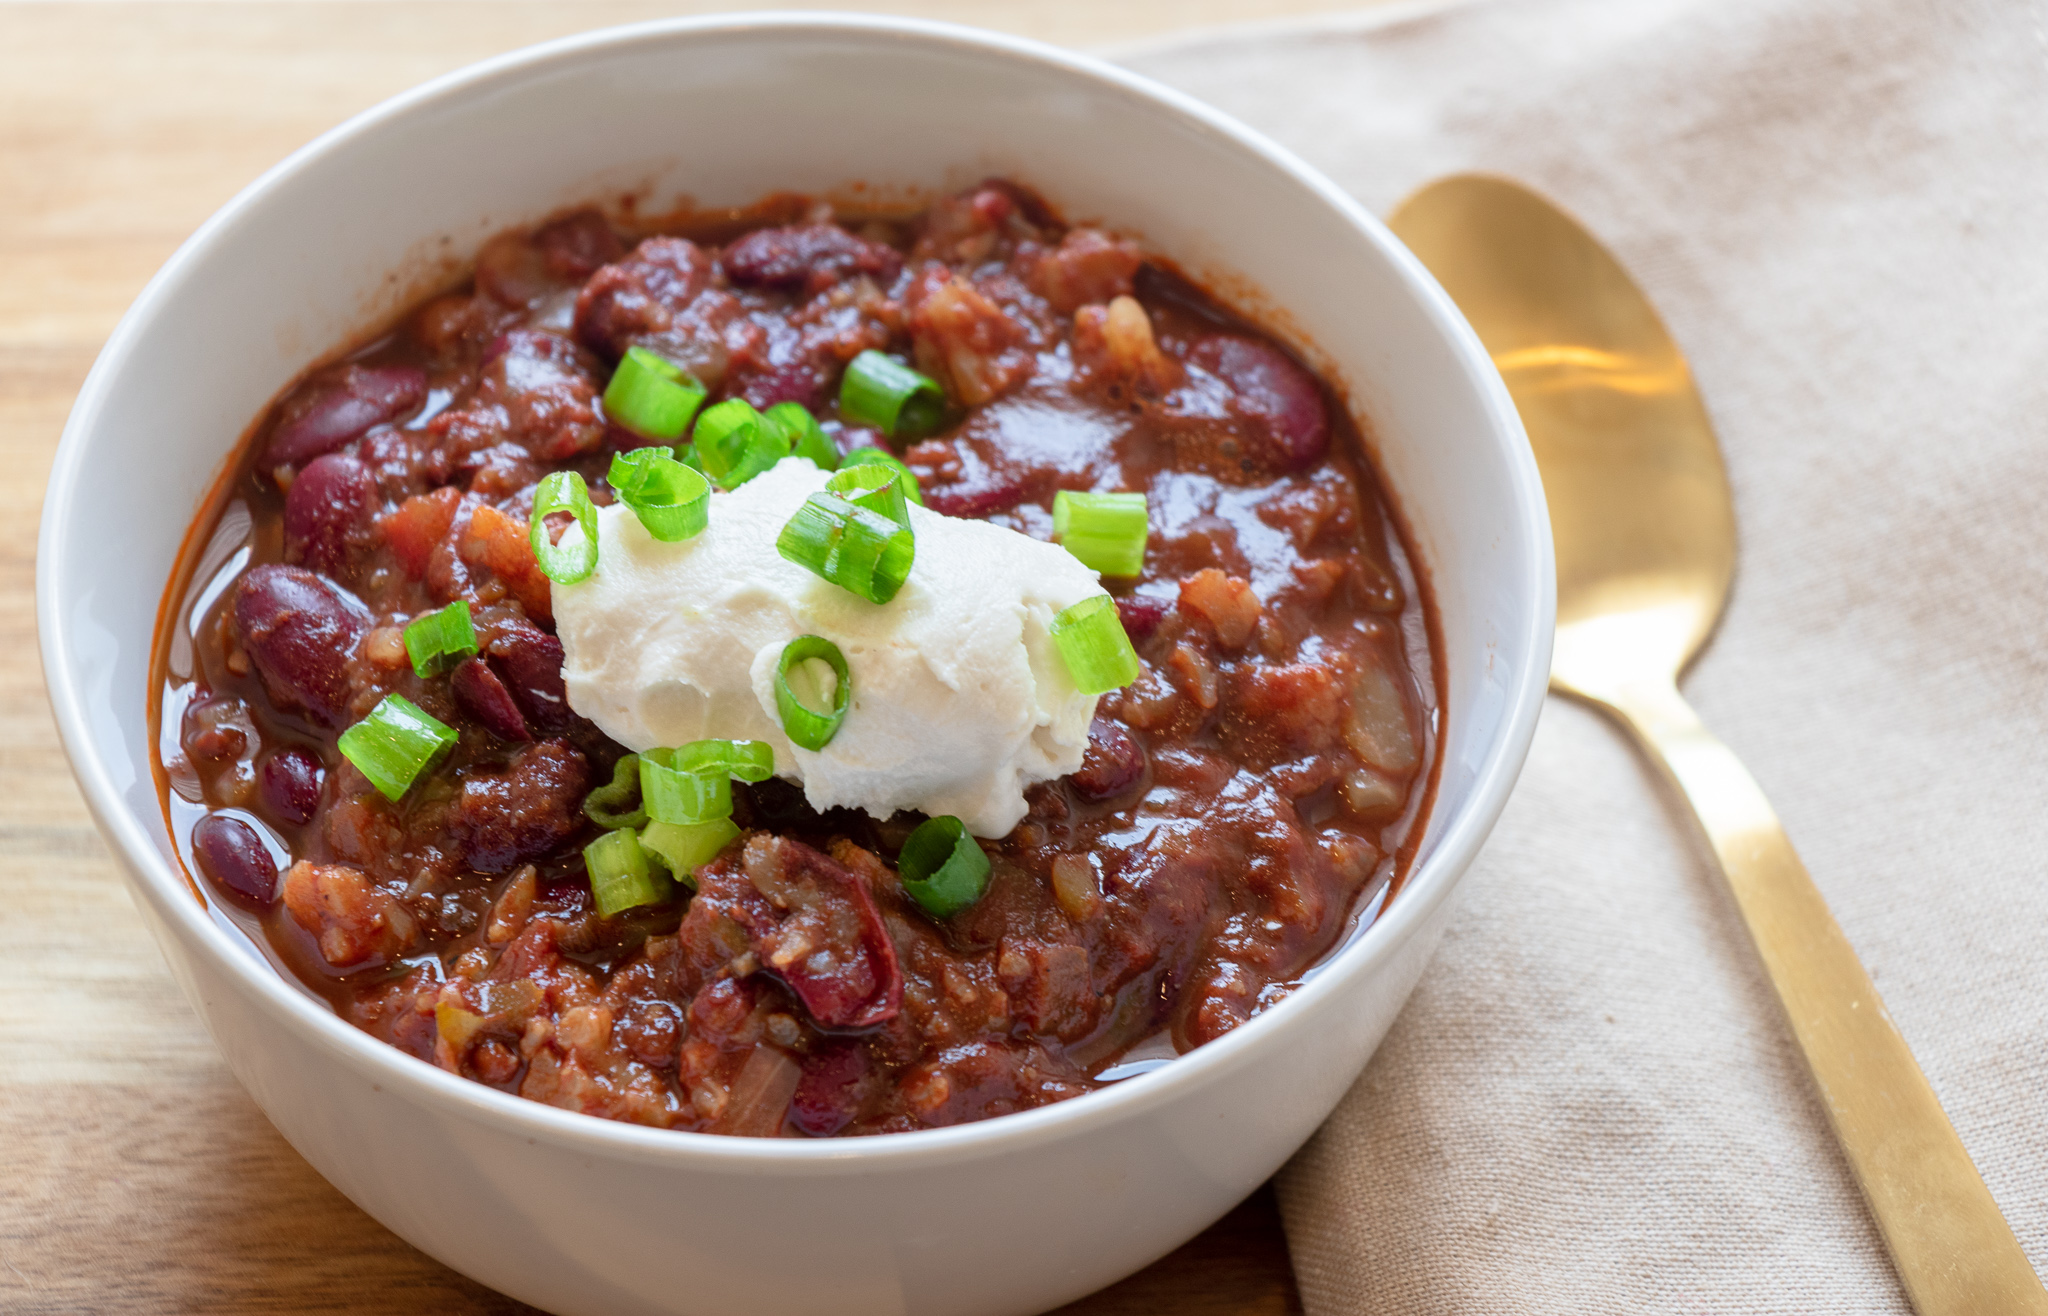 I love chili!! I love it plain, on a baked potato, on a carrot dog, on some fries with some cheese, on latkes at Hanukkah. I love it summer, fall winter, or spring. This chili is hands down my favorite recipe. Its simple, and super easy to make. Freeze any left overs for a quick weeknight dinner in a pinch.